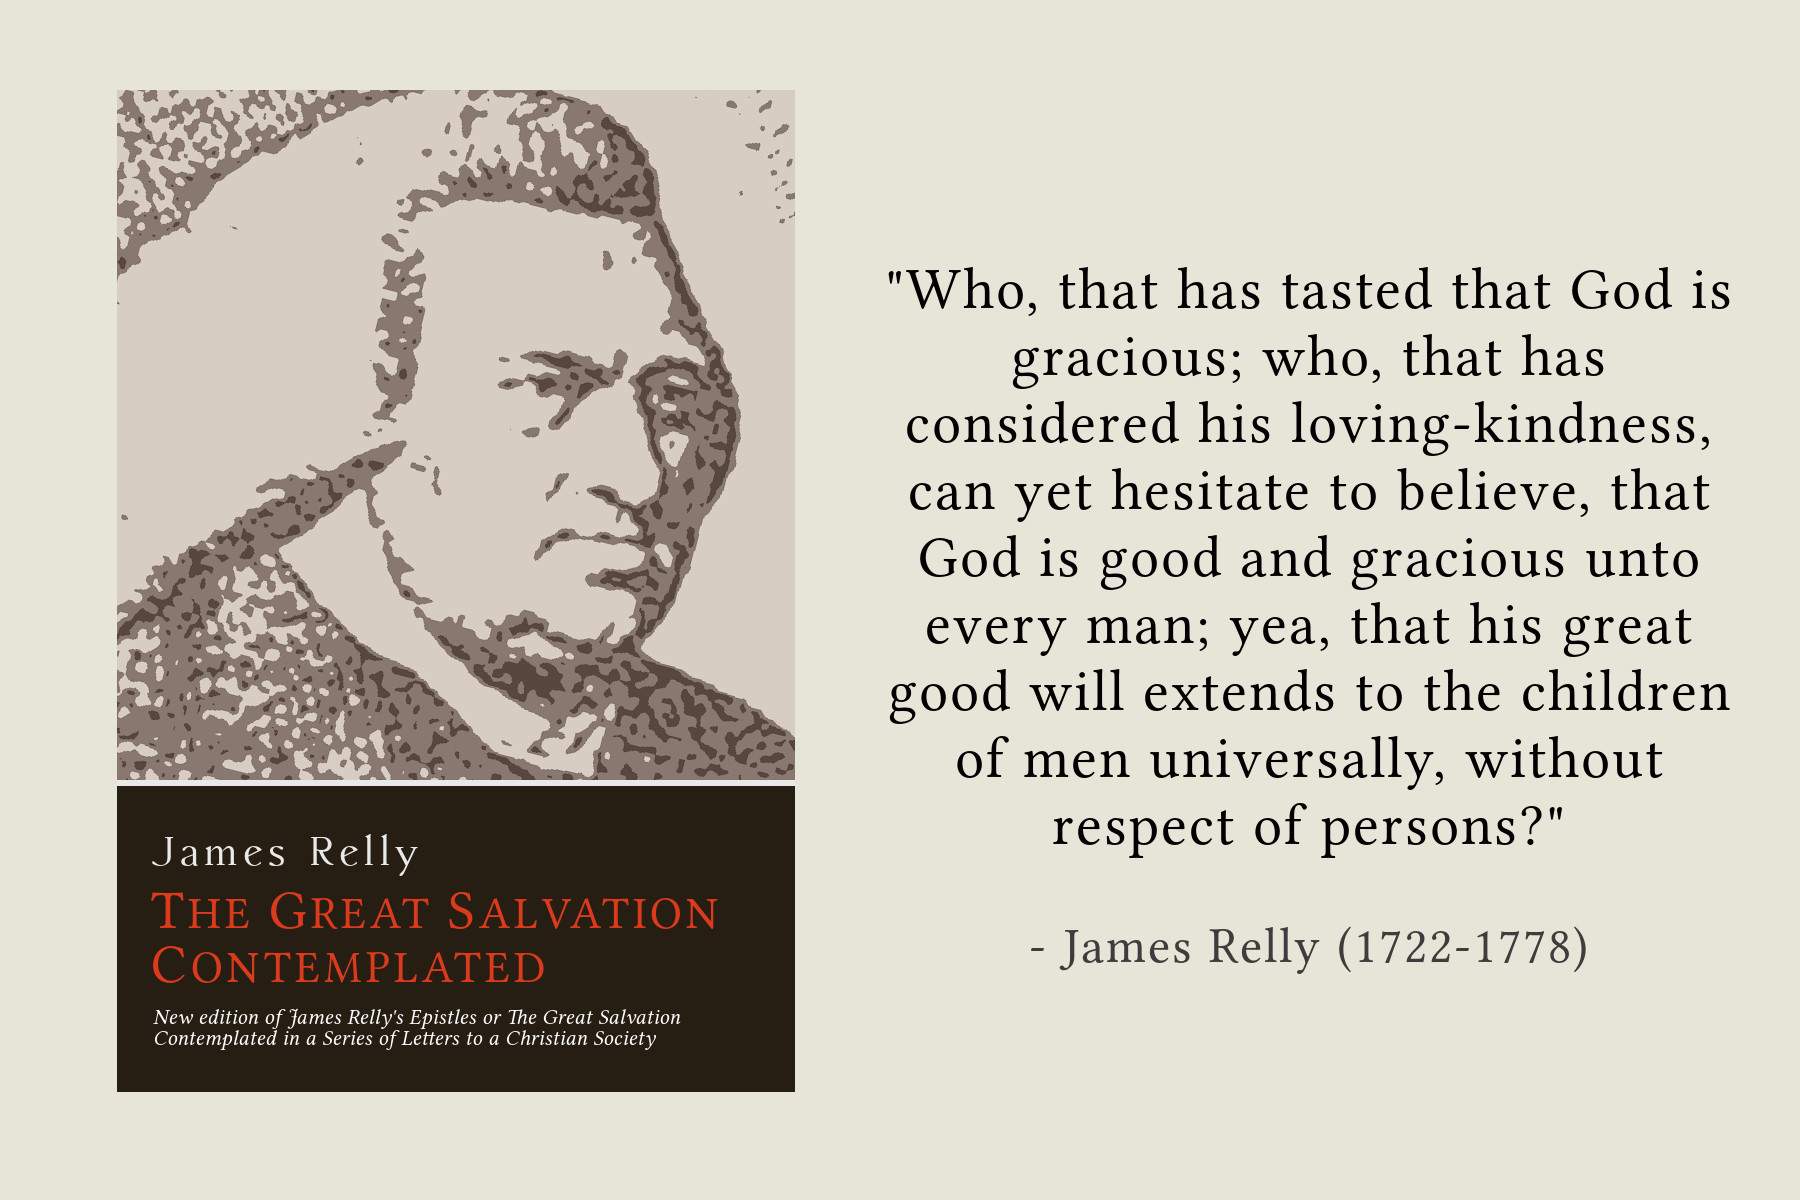 The Great Salvation Contemplated